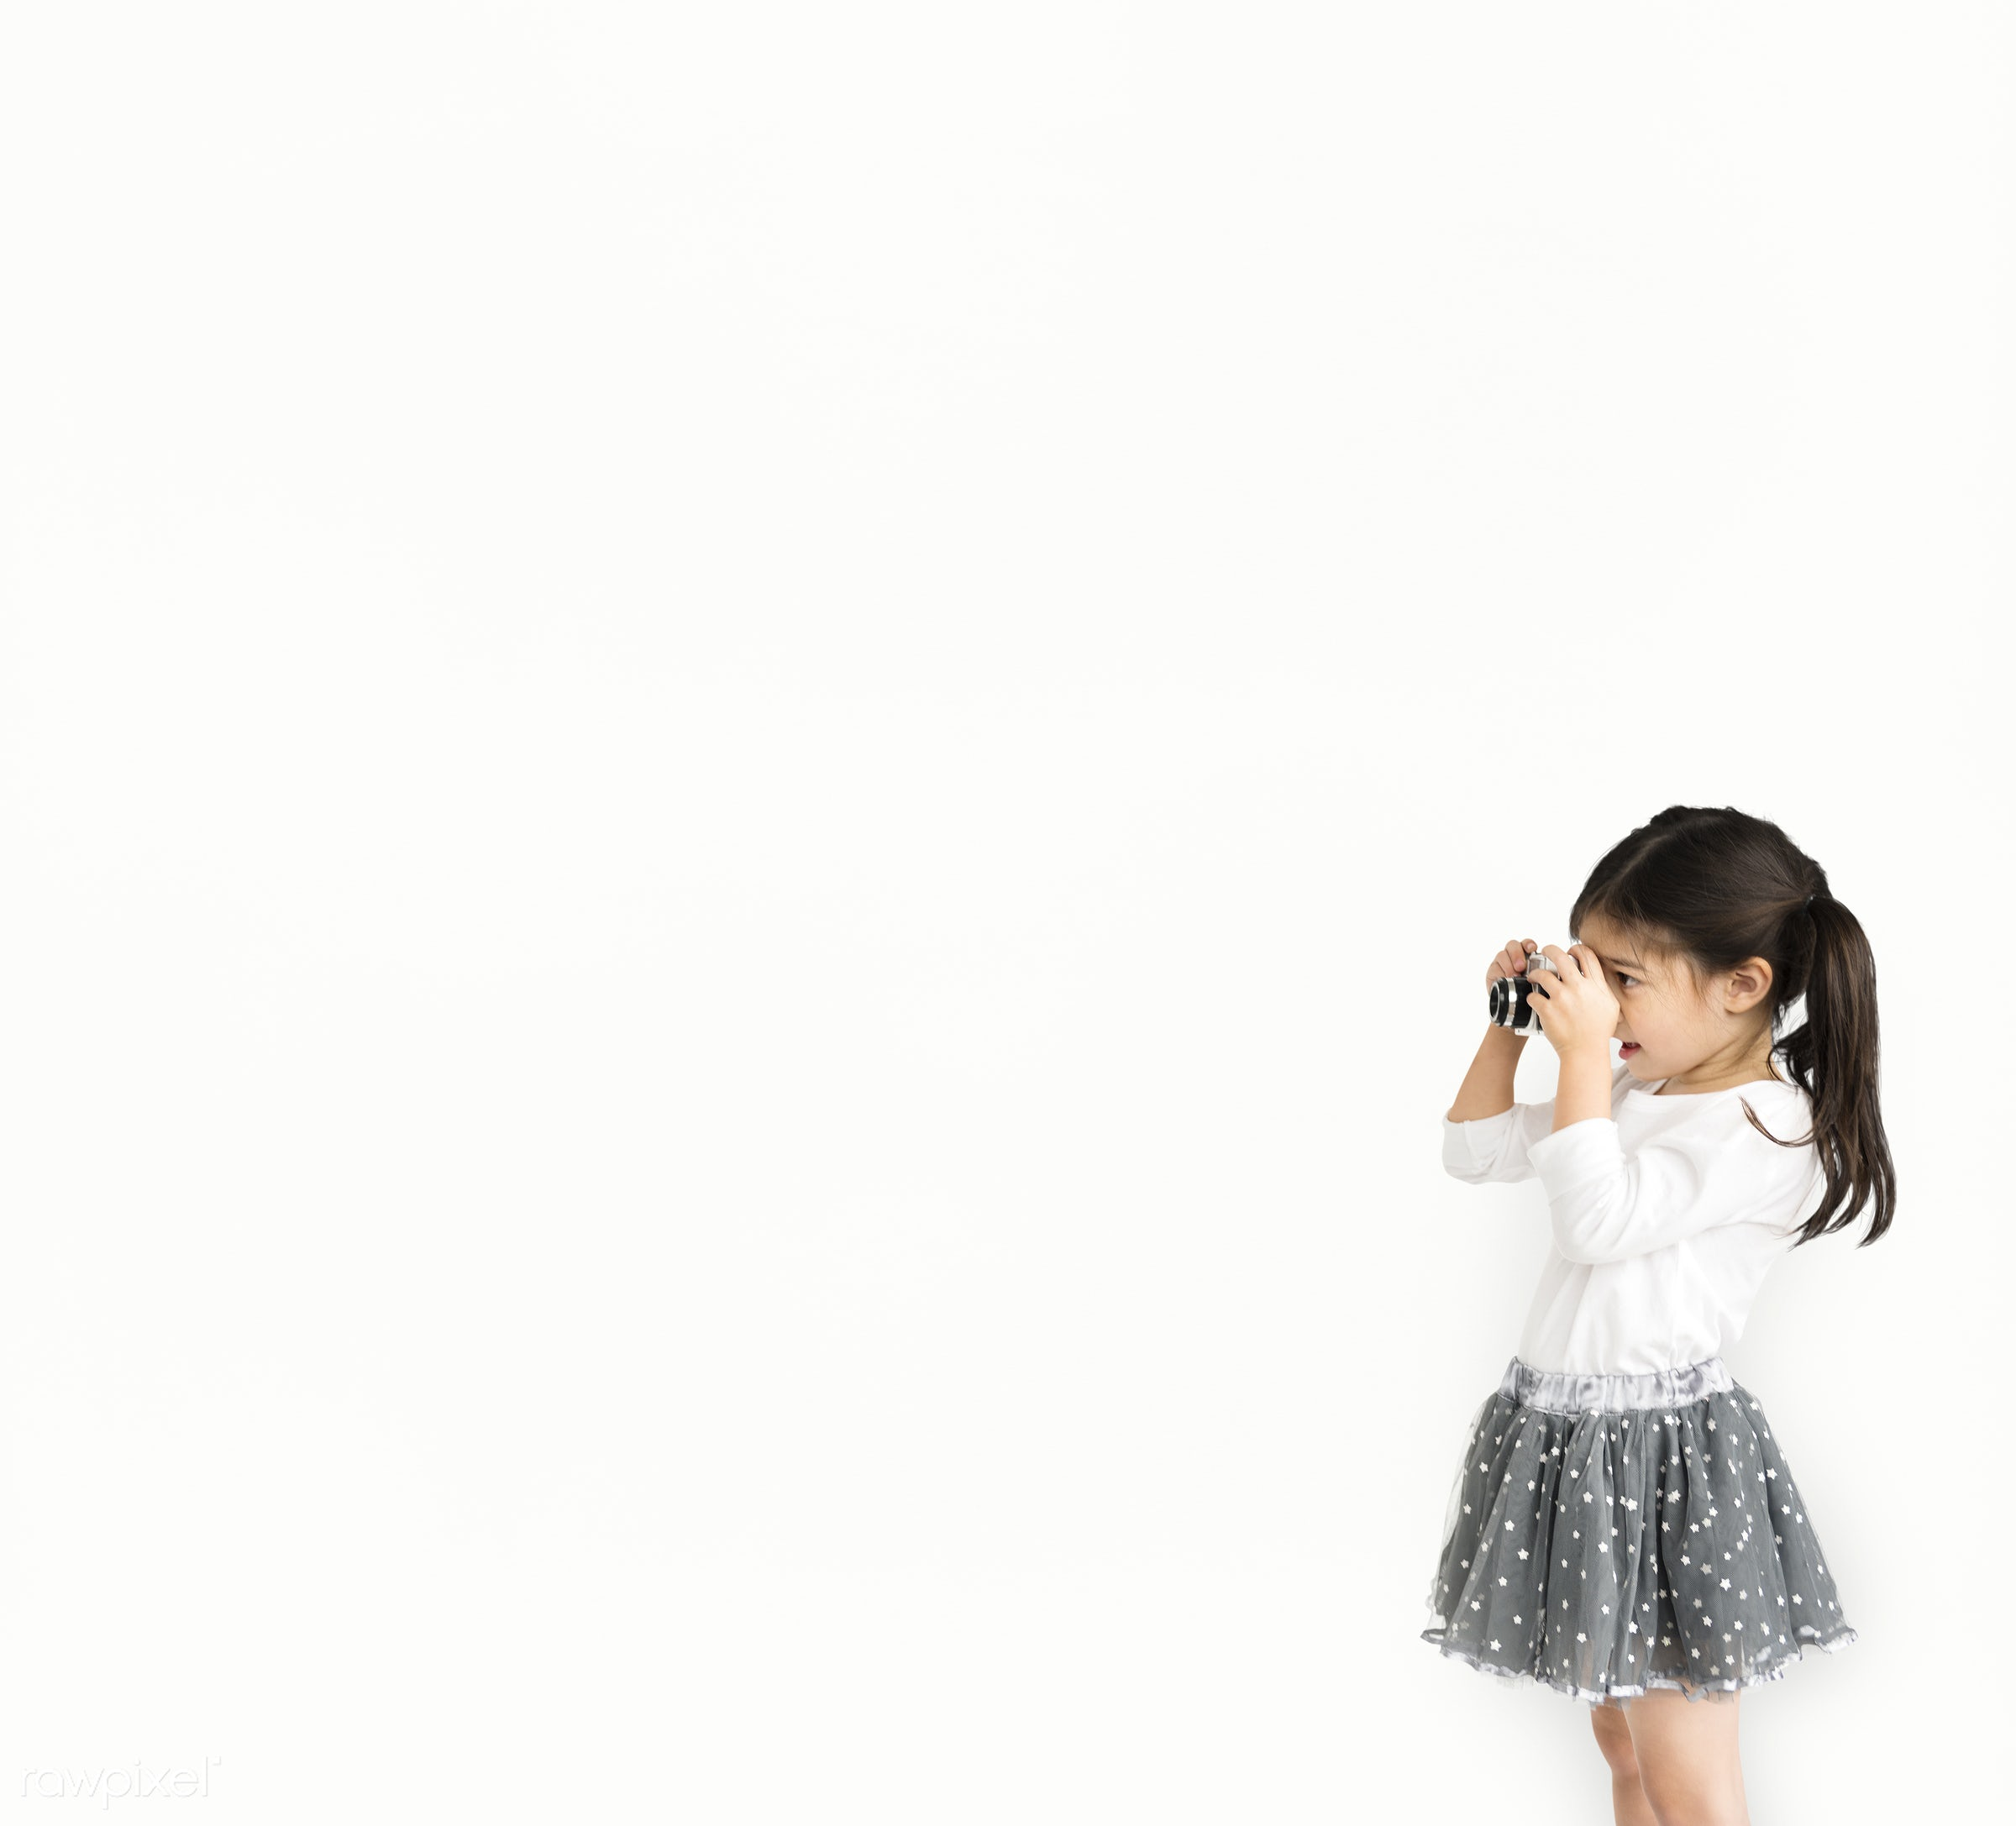 expression, studio, person, isolated on white, cute, people, pretty, drawing, child, girl, happy, casual, childhood,...